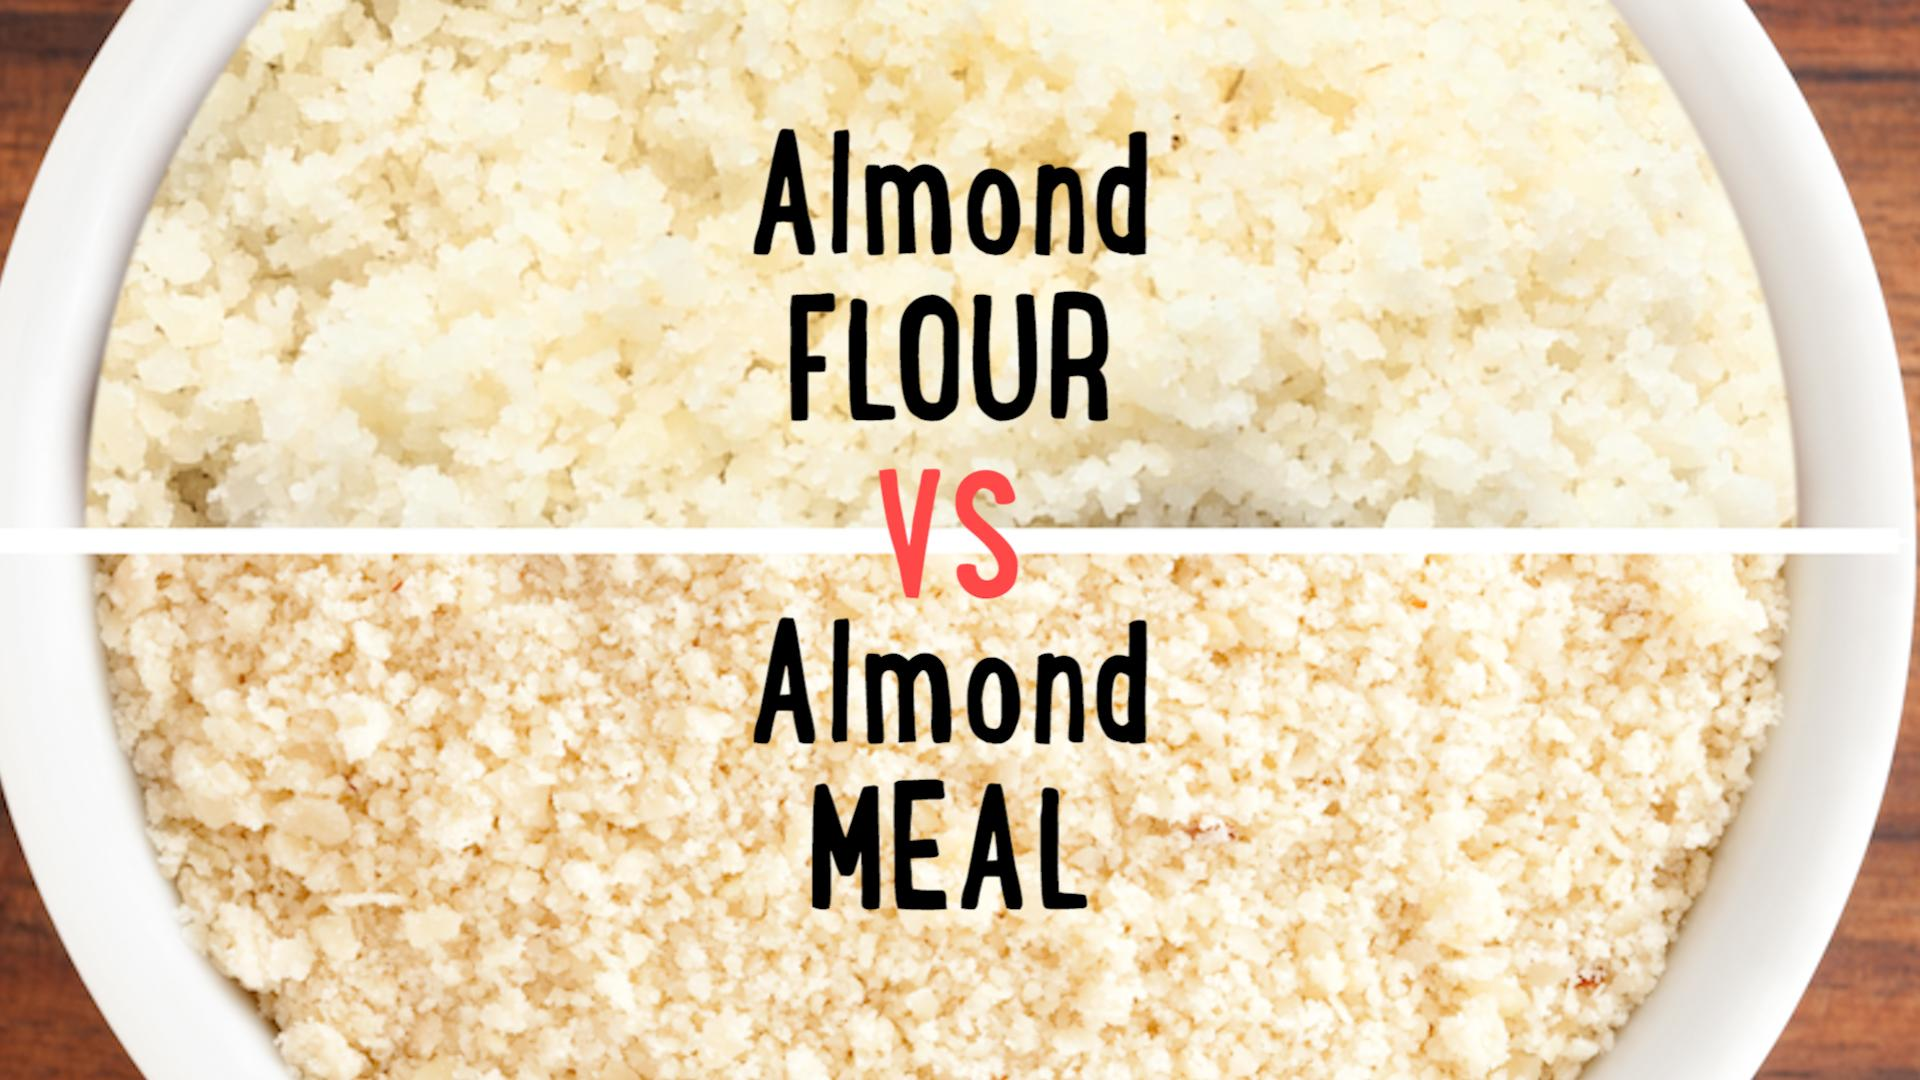 And what is the difference between FLOUR of general purpose and the highest grade